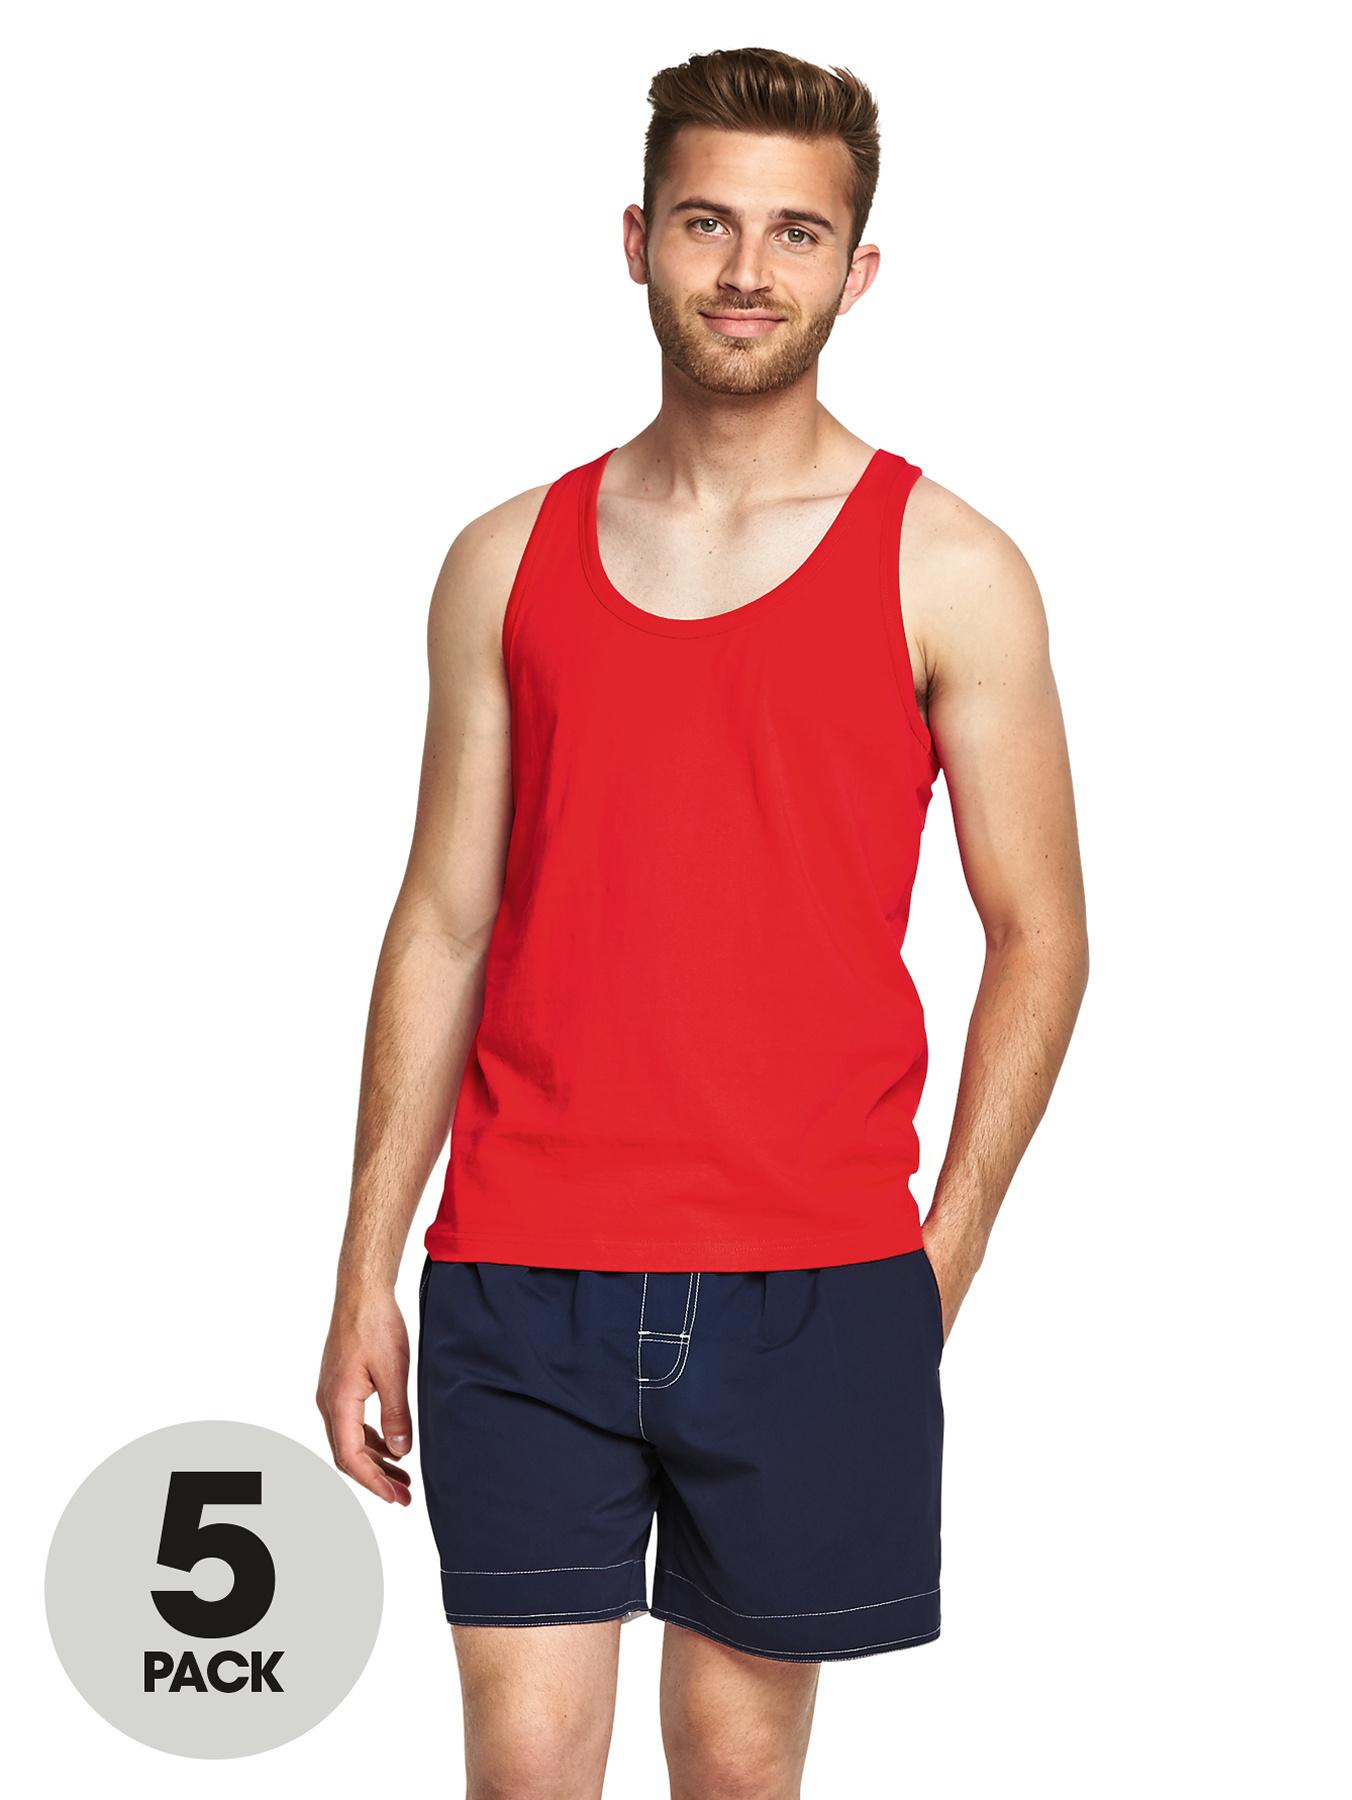 Goodsouls Mens Vests (5 Pack)